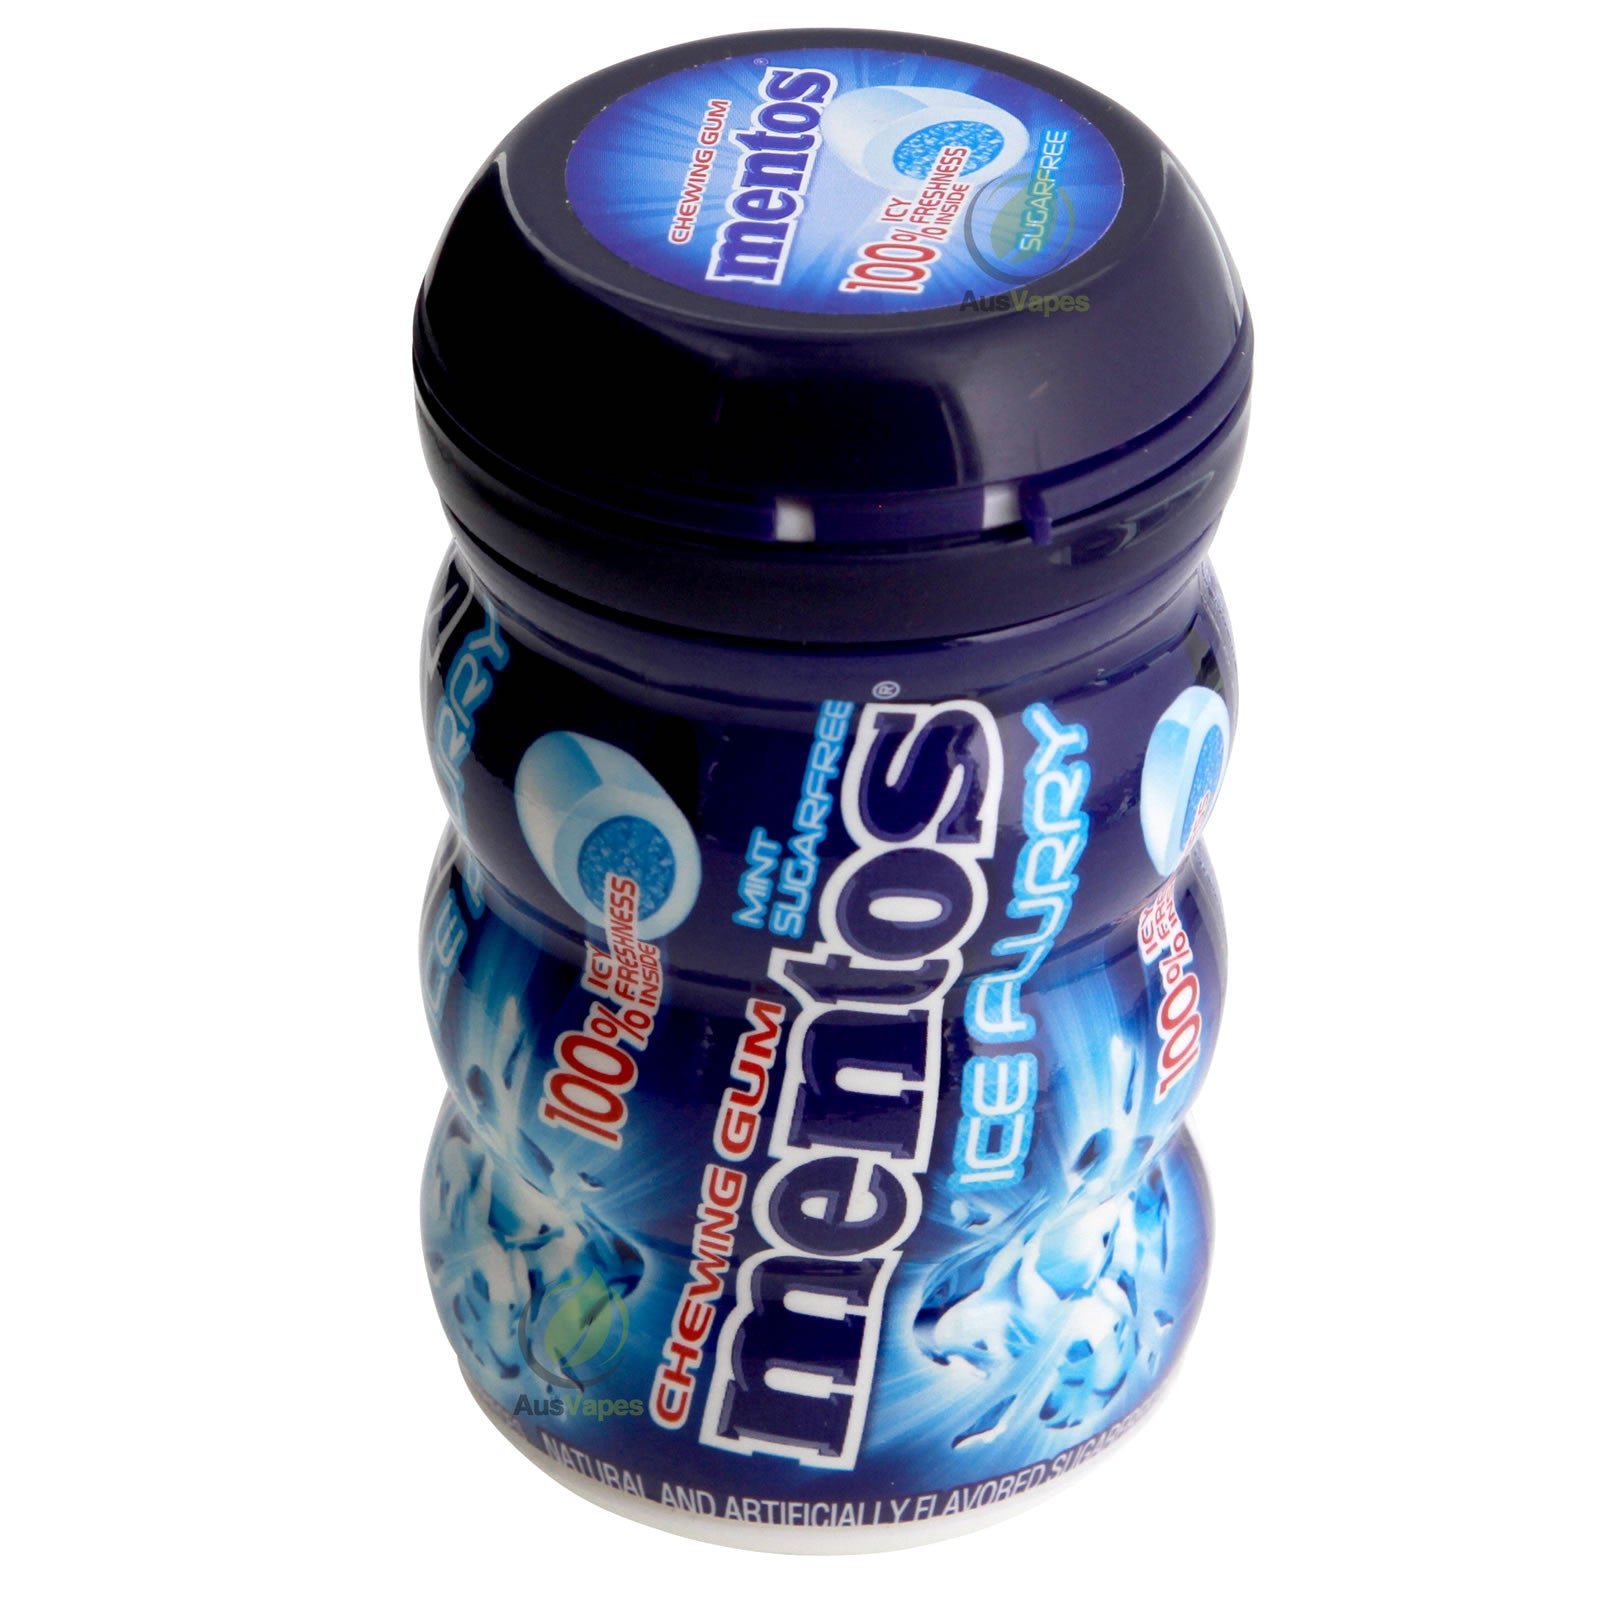 Mentos Gum Security Container